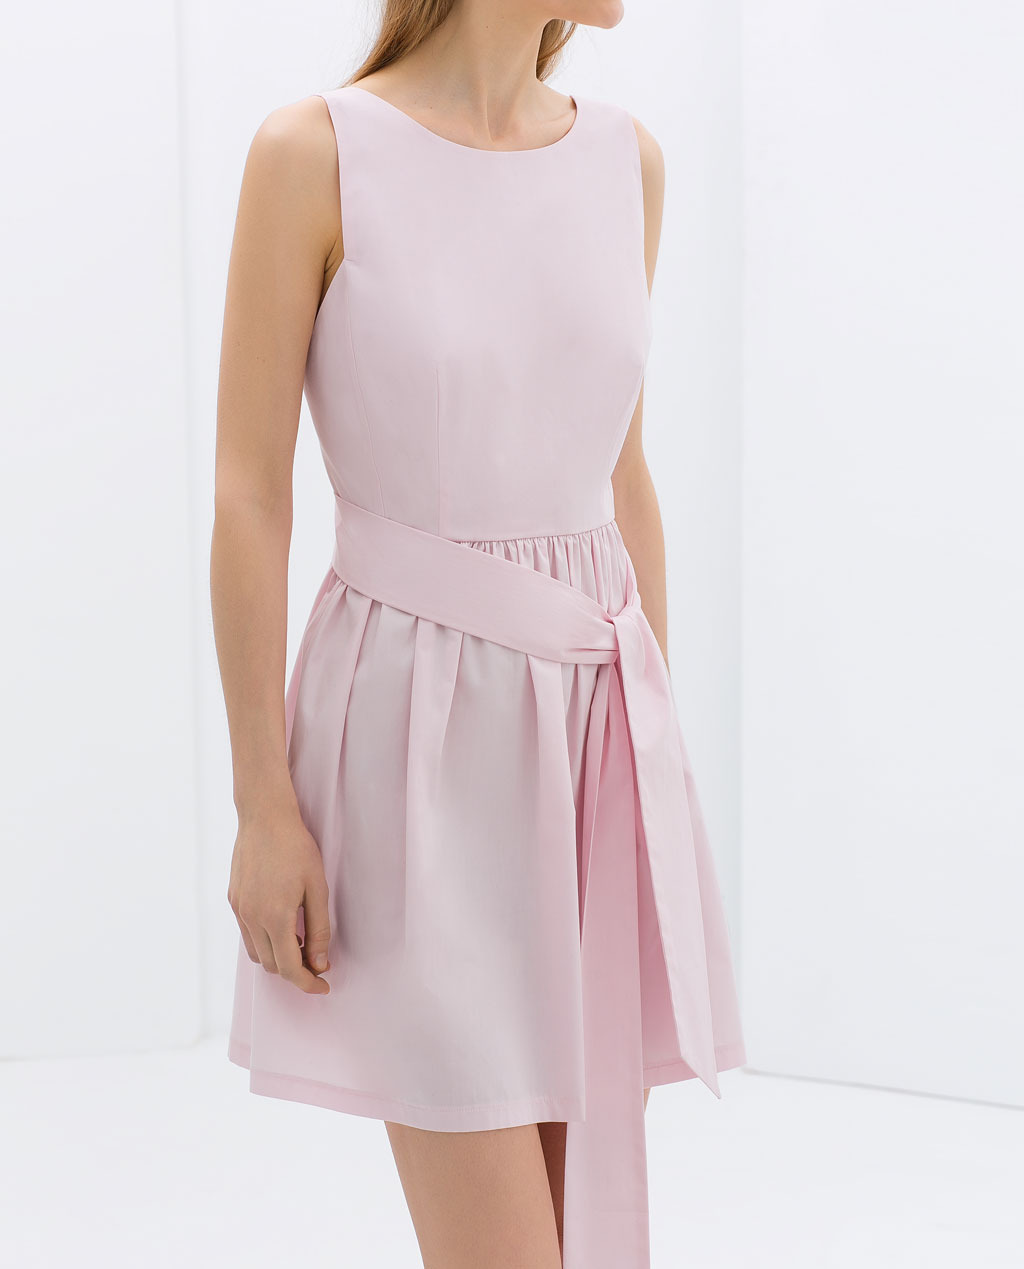 Poplin Dress With Bow At The Back - length: mid thigh; neckline: round neck; pattern: plain; sleeve style: sleeveless; back detail: back revealing; waist detail: belted waist/tie at waist/drawstring; predominant colour: blush; occasions: casual, evening, holiday, creative work; fit: fitted at waist & bust; style: fit & flare; fibres: cotton - 100%; sleeve length: sleeveless; texture group: cotton feel fabrics; hip detail: ruffles/tiers/tie detail at hip; pattern type: fabric; trends: sorbet shades; season: s/s 2014